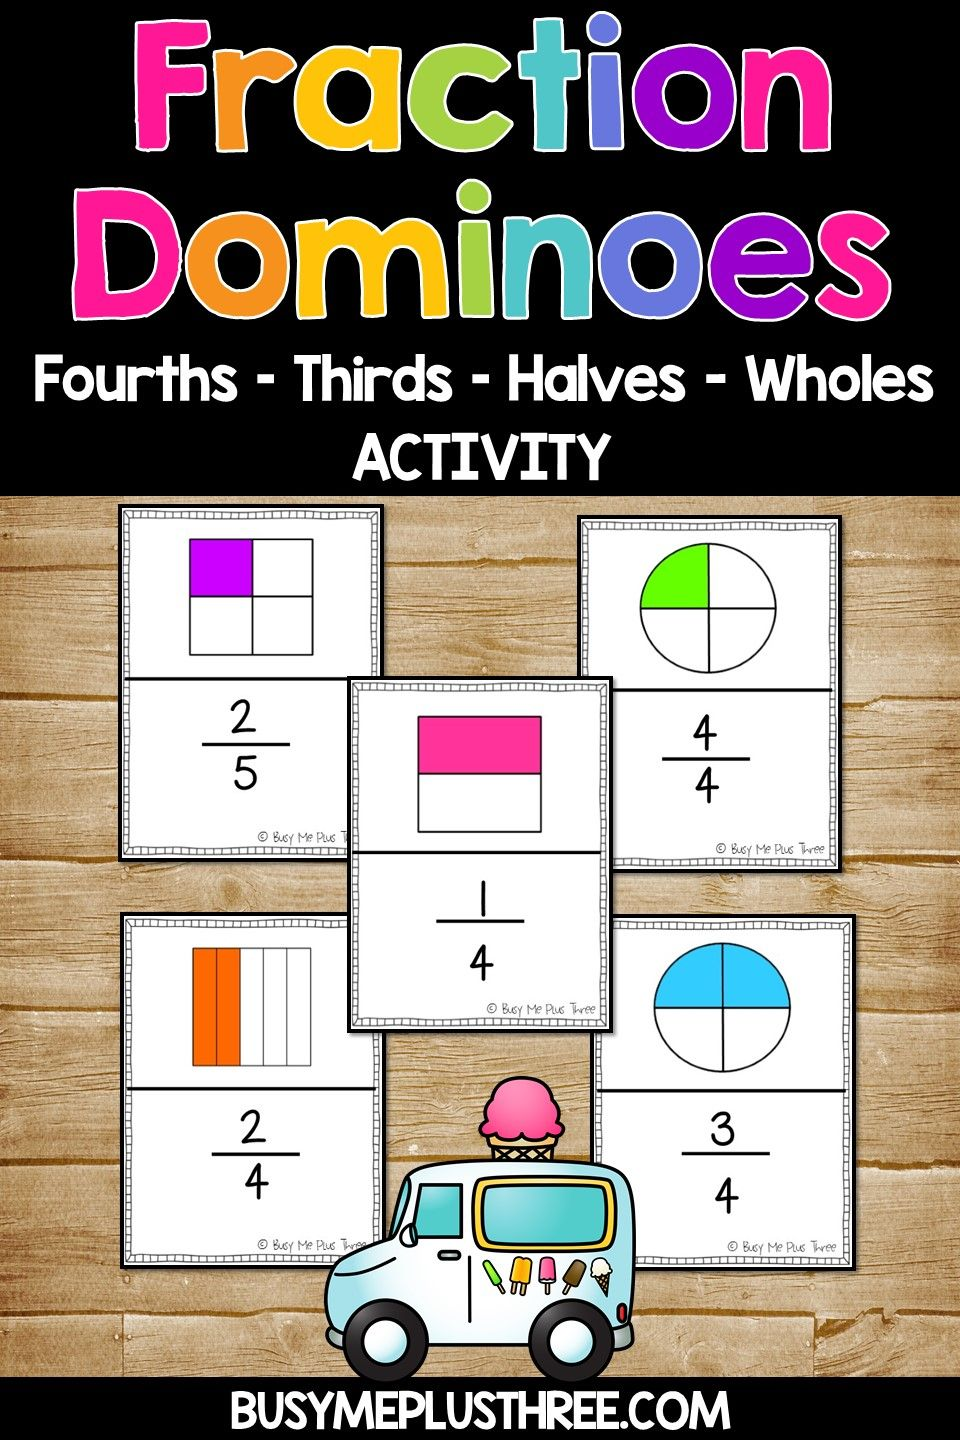 Fraction Dominoes Game Fourths Thirds Halves Wholes Fun Fractions Activity Games For Kids Fun Fractions Activities